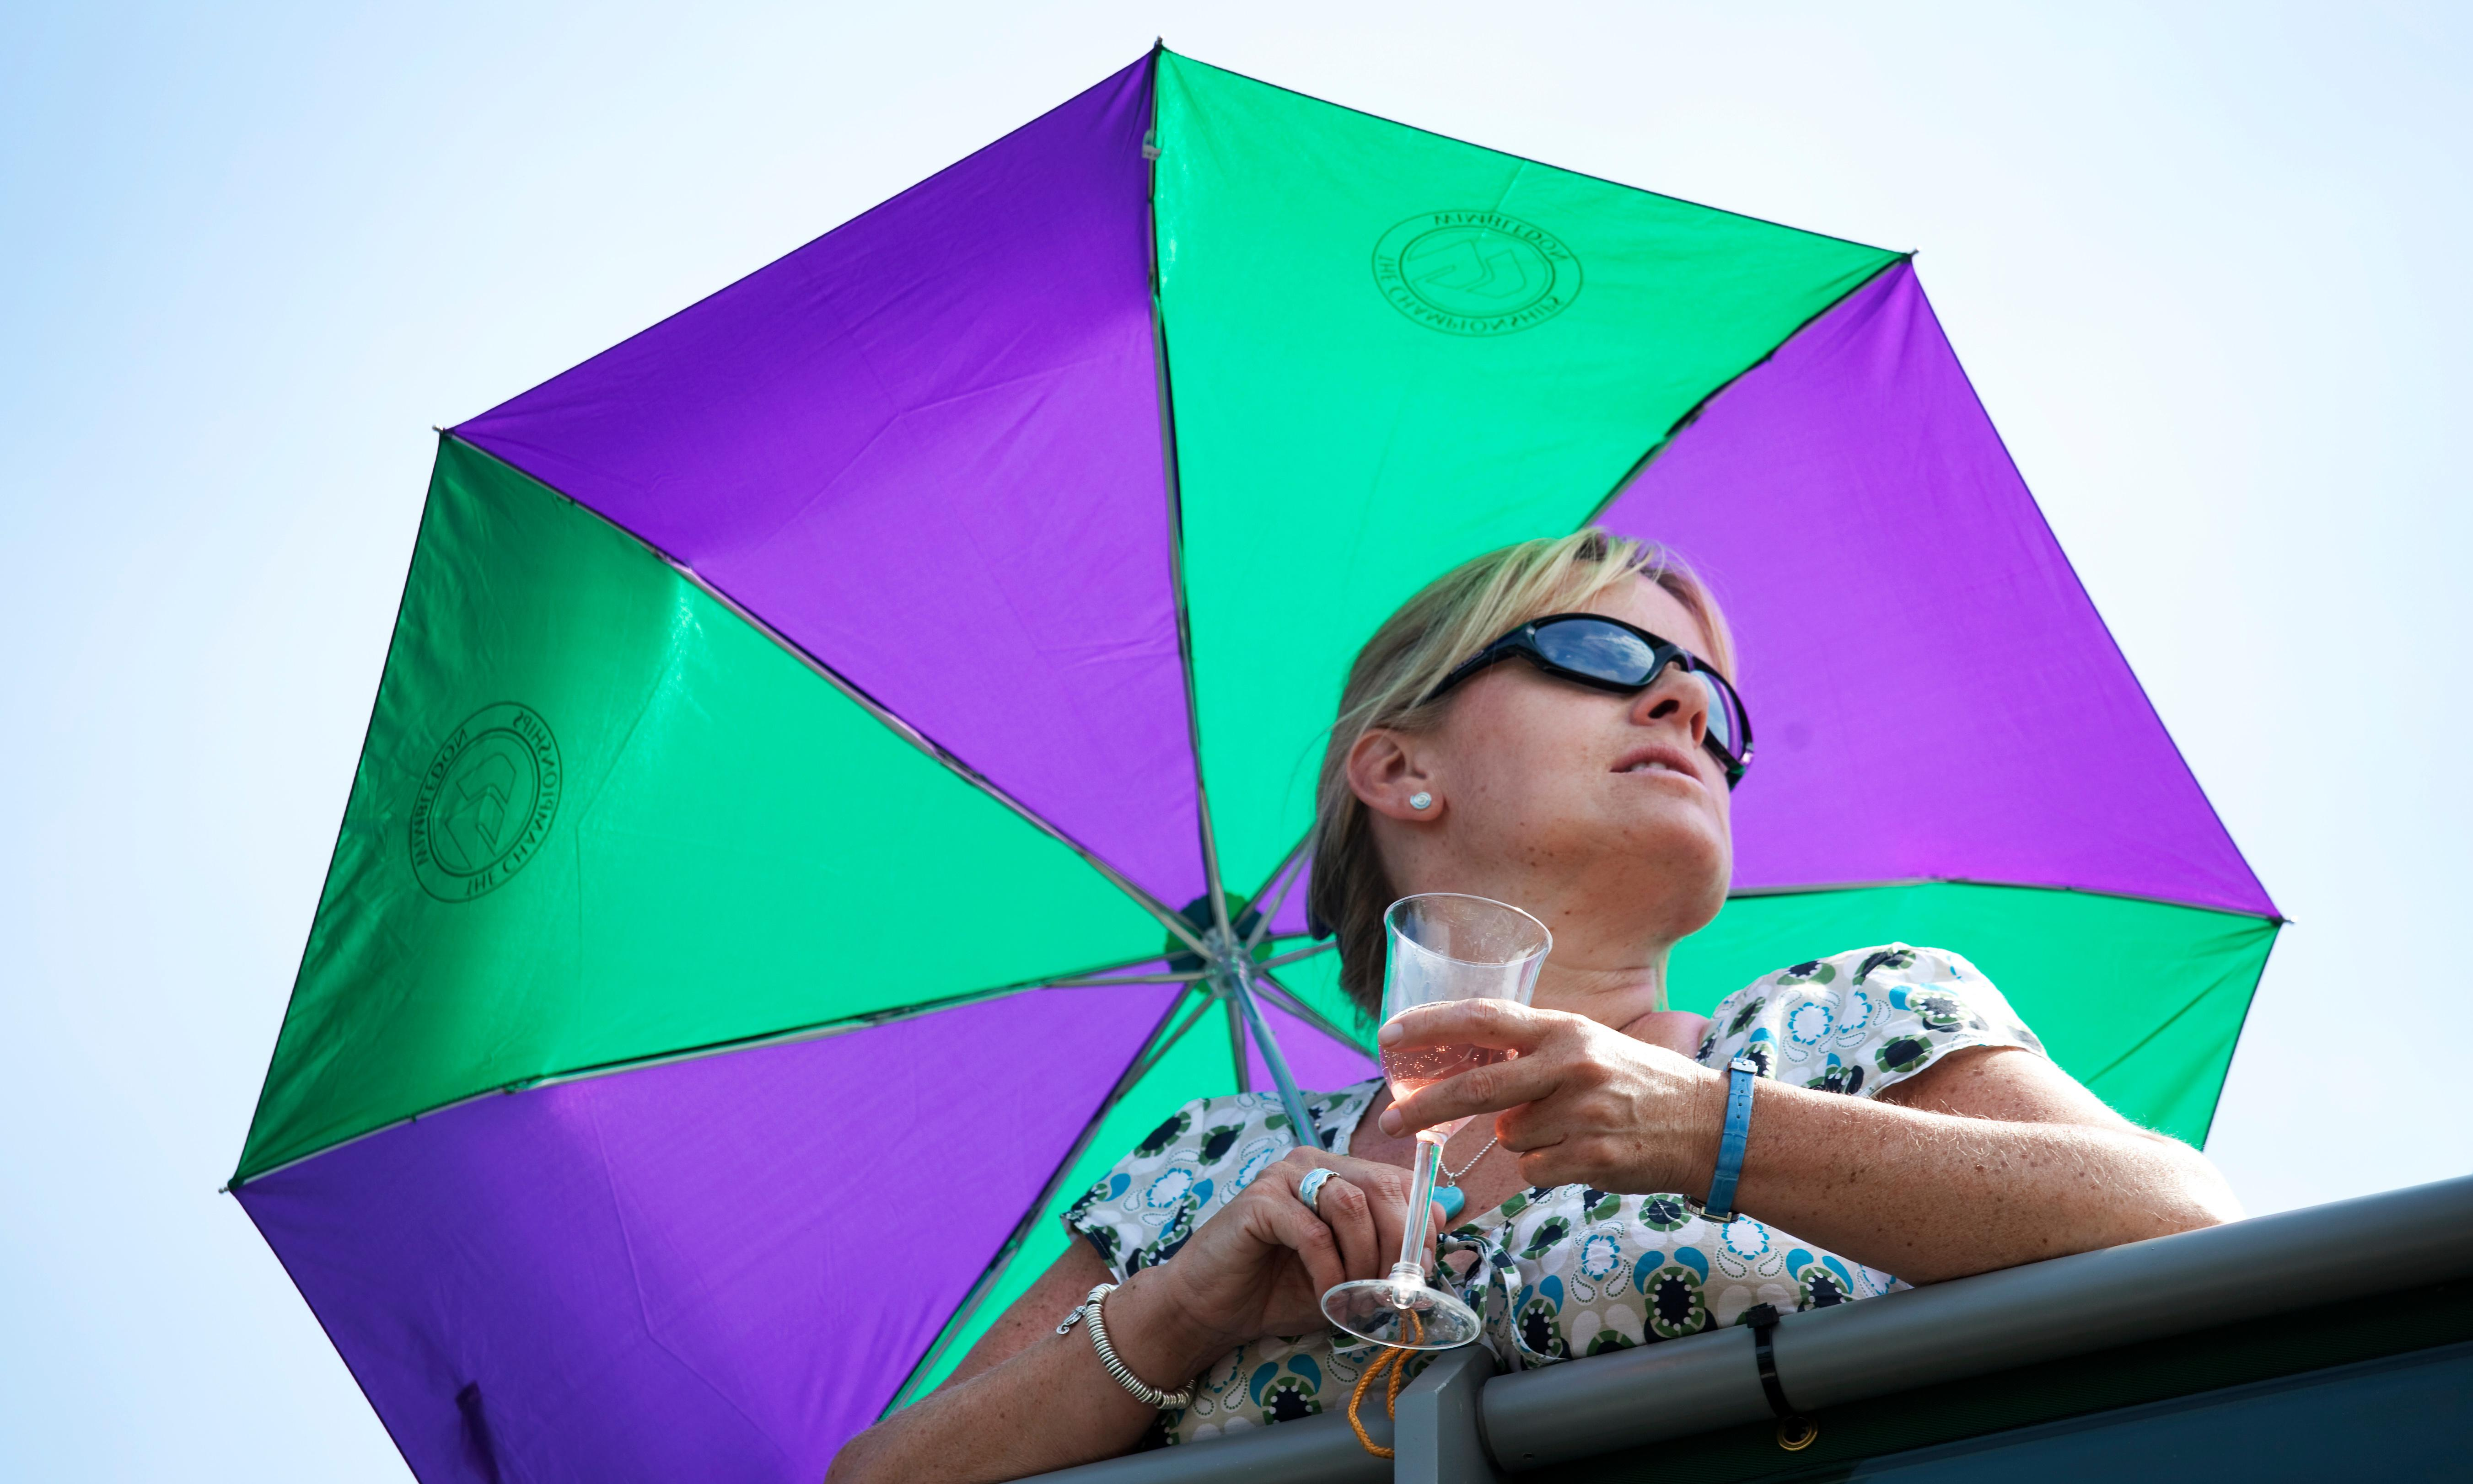 Flying champagne corks burst bubble on Wimbledon matches